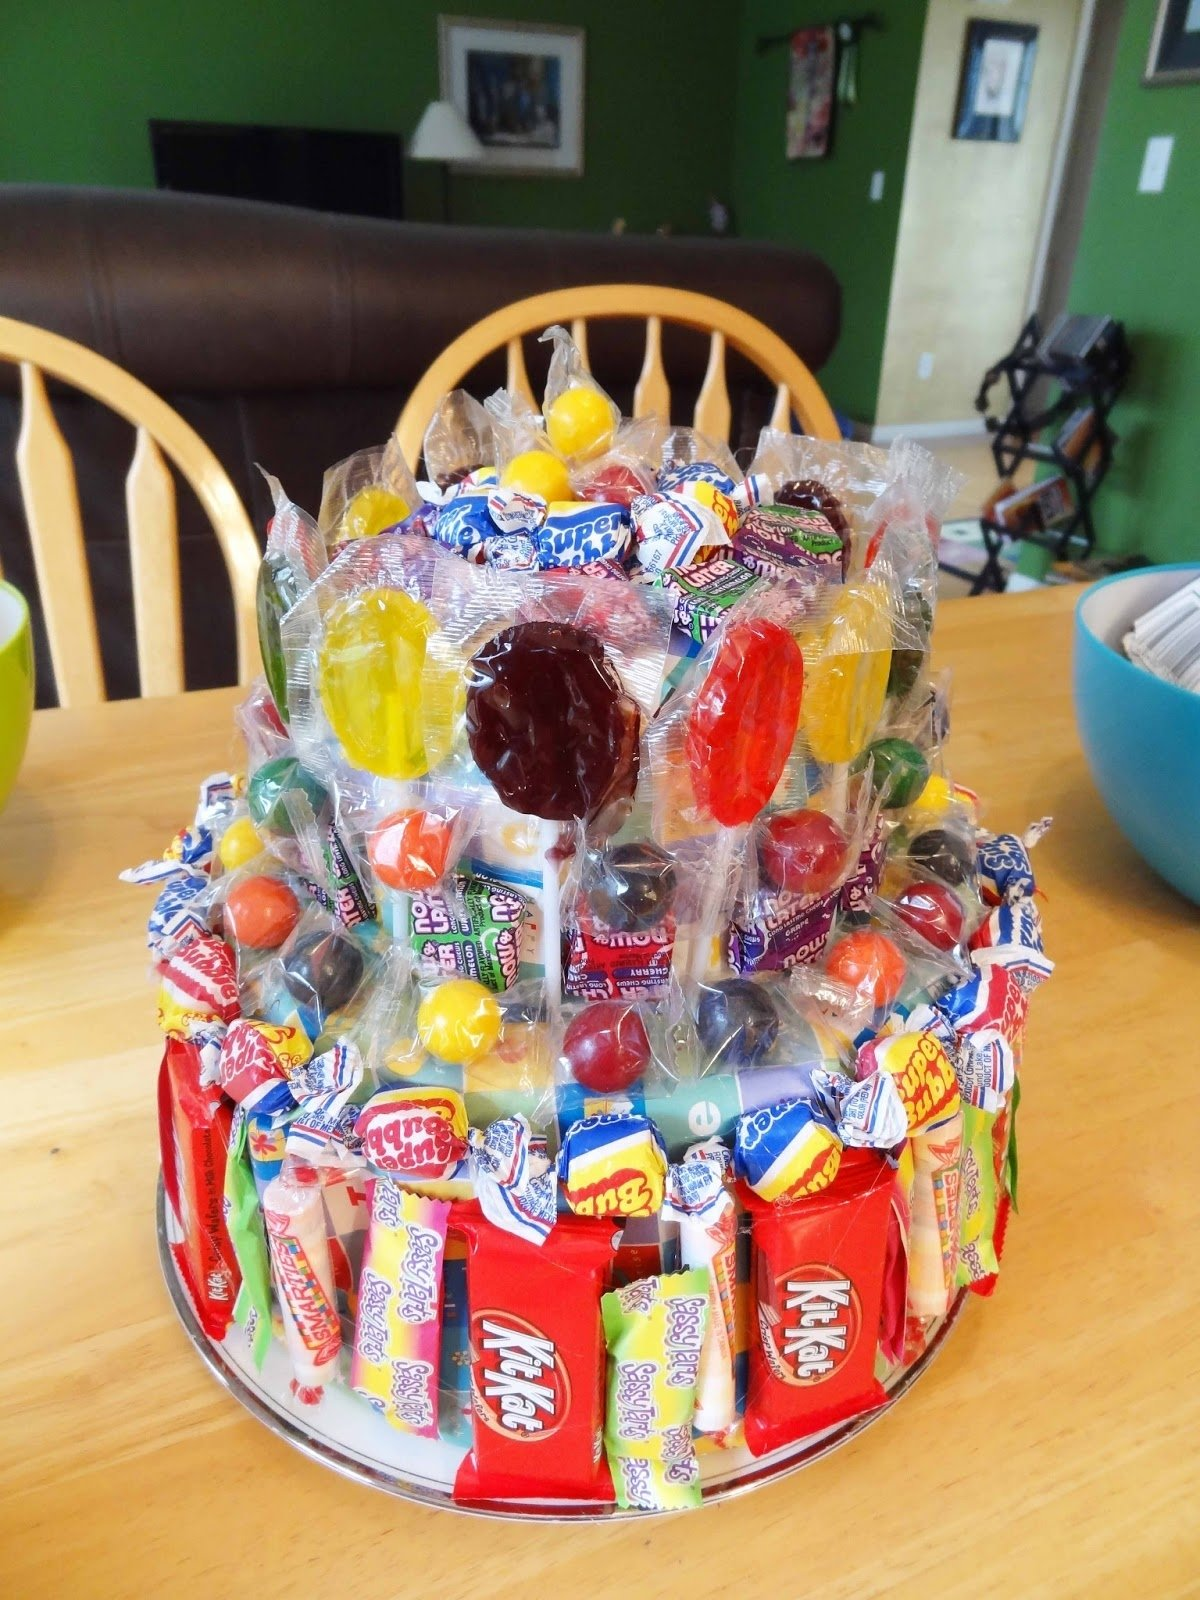 10 Attractive Birthday Party Ideas For 14 Year Olds teen birthday party crafty leslies blog 2020